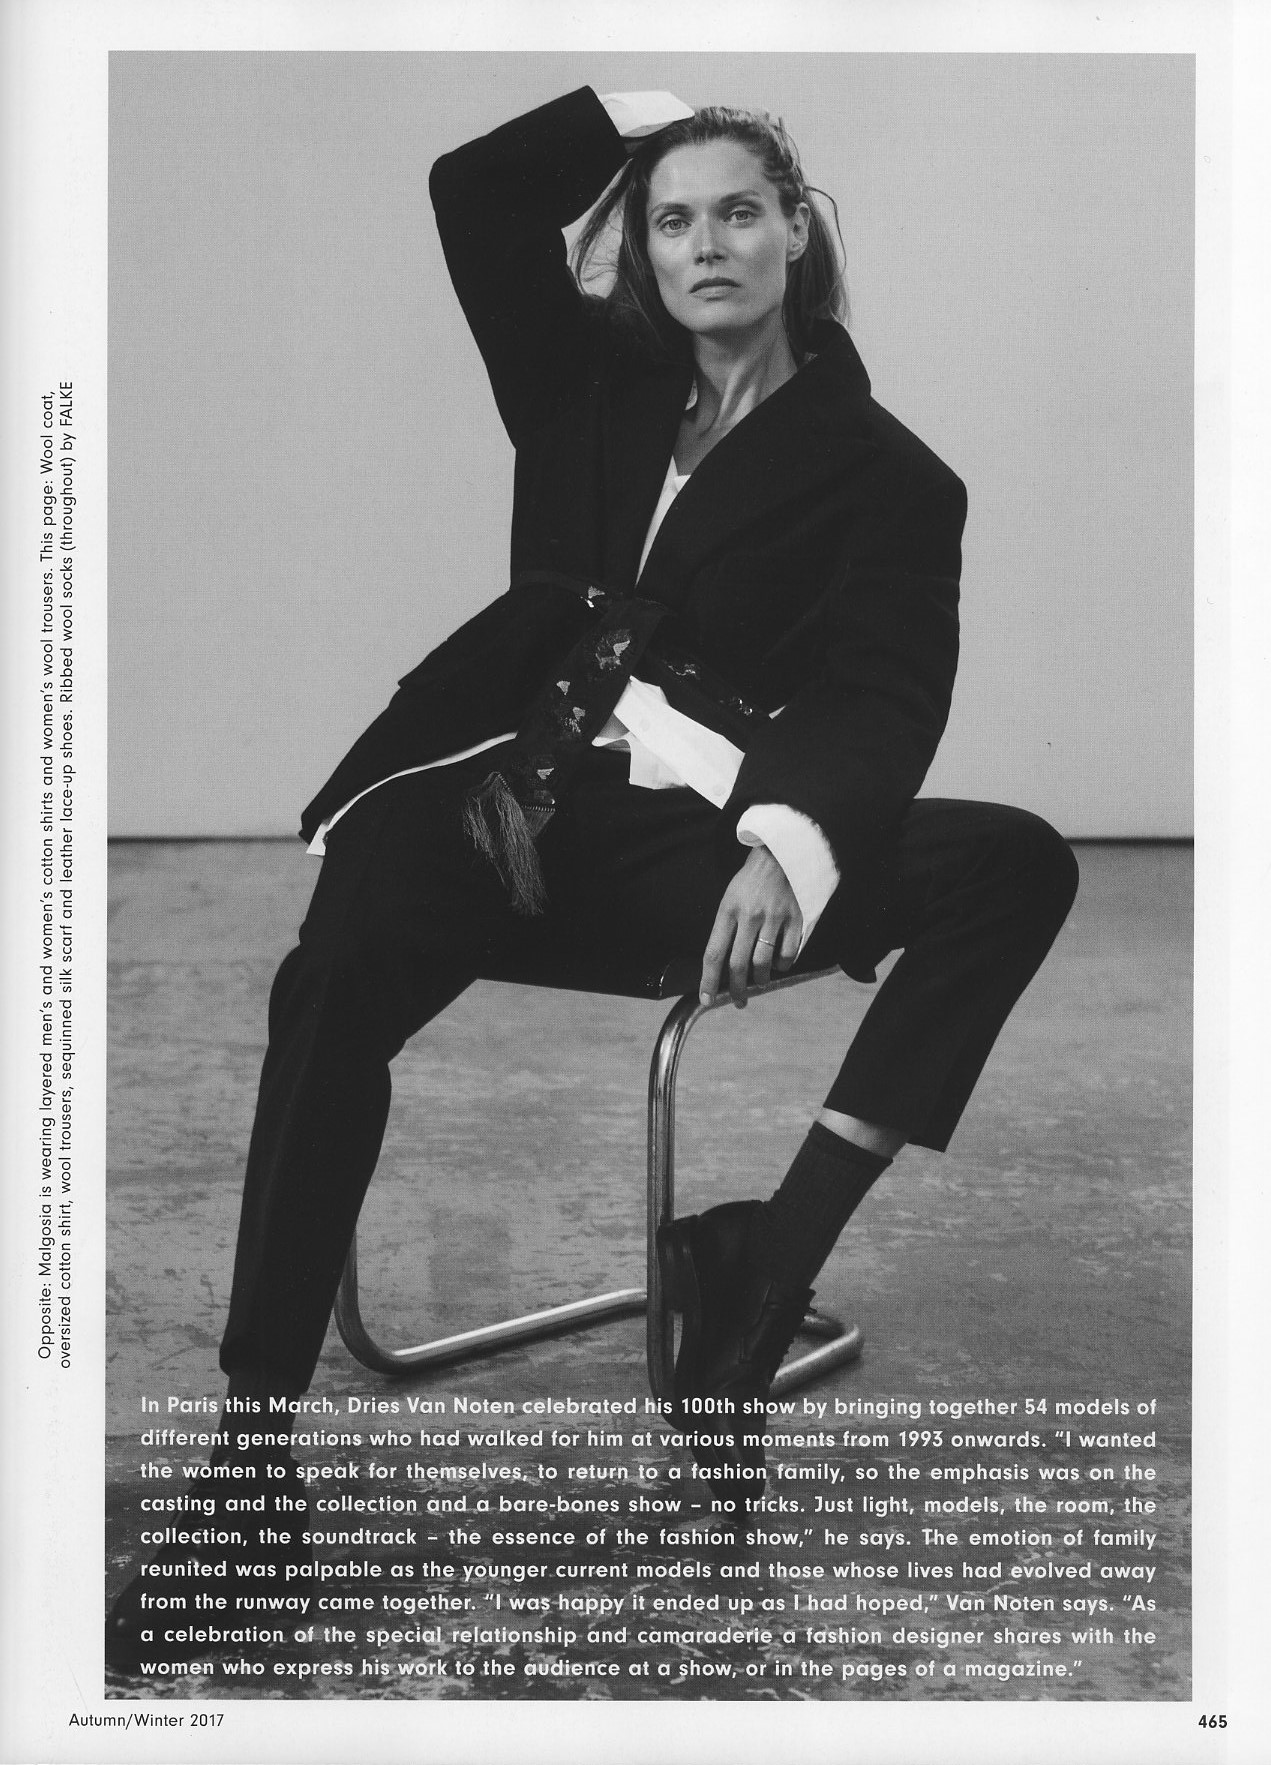 dries van noten photography collier schorr styling katie shillingford another magazine vol 2 issue 6 aw 2017 2